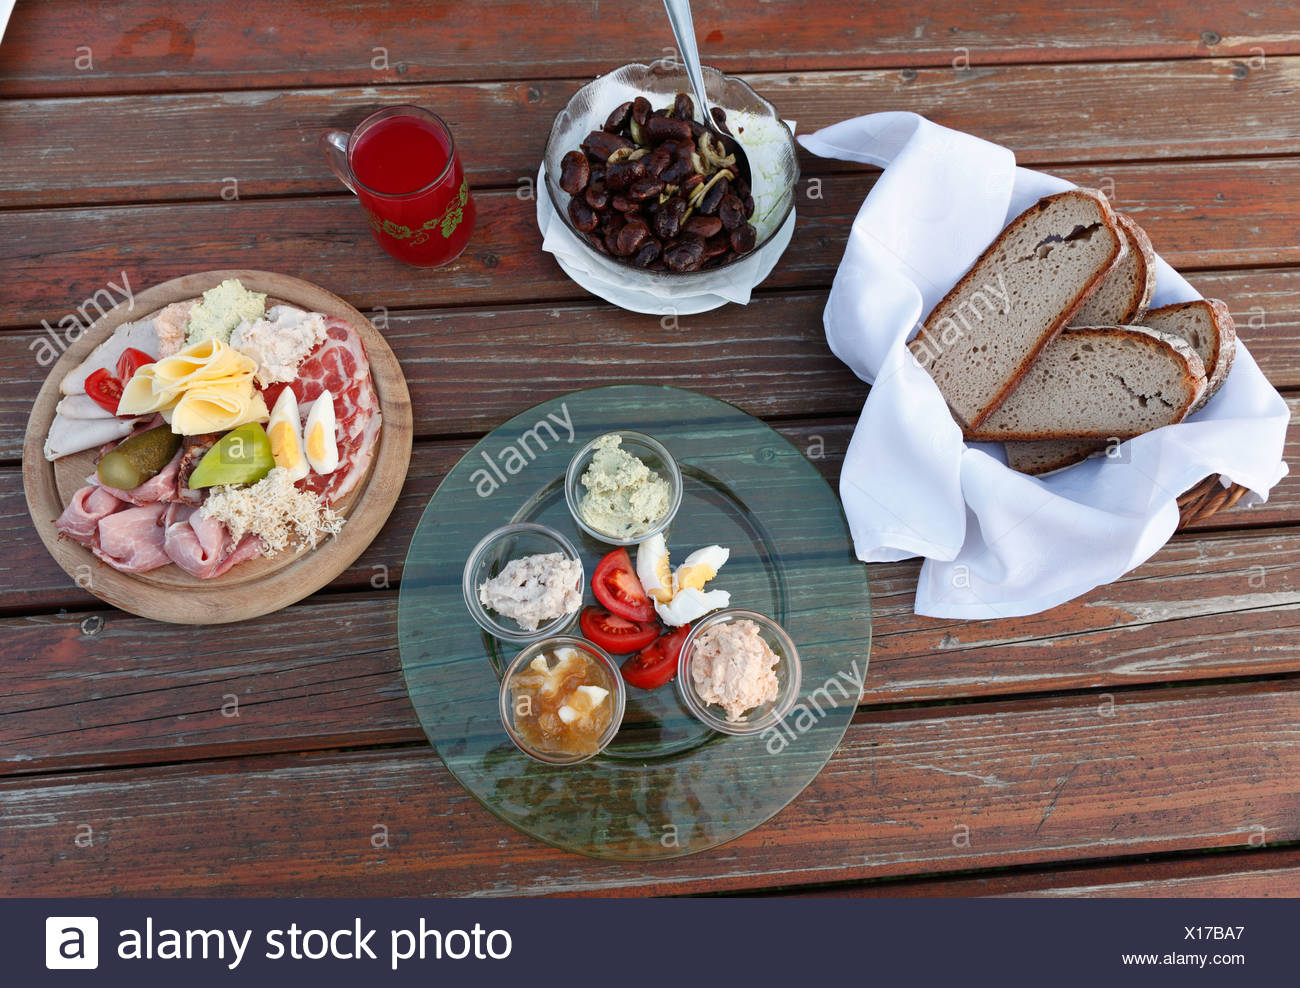 Hearty snack, bread and a plate with a variety of spreads, Brettljause, a plate with cold cuts, Styrian scarlet runner beans and - Stock Image